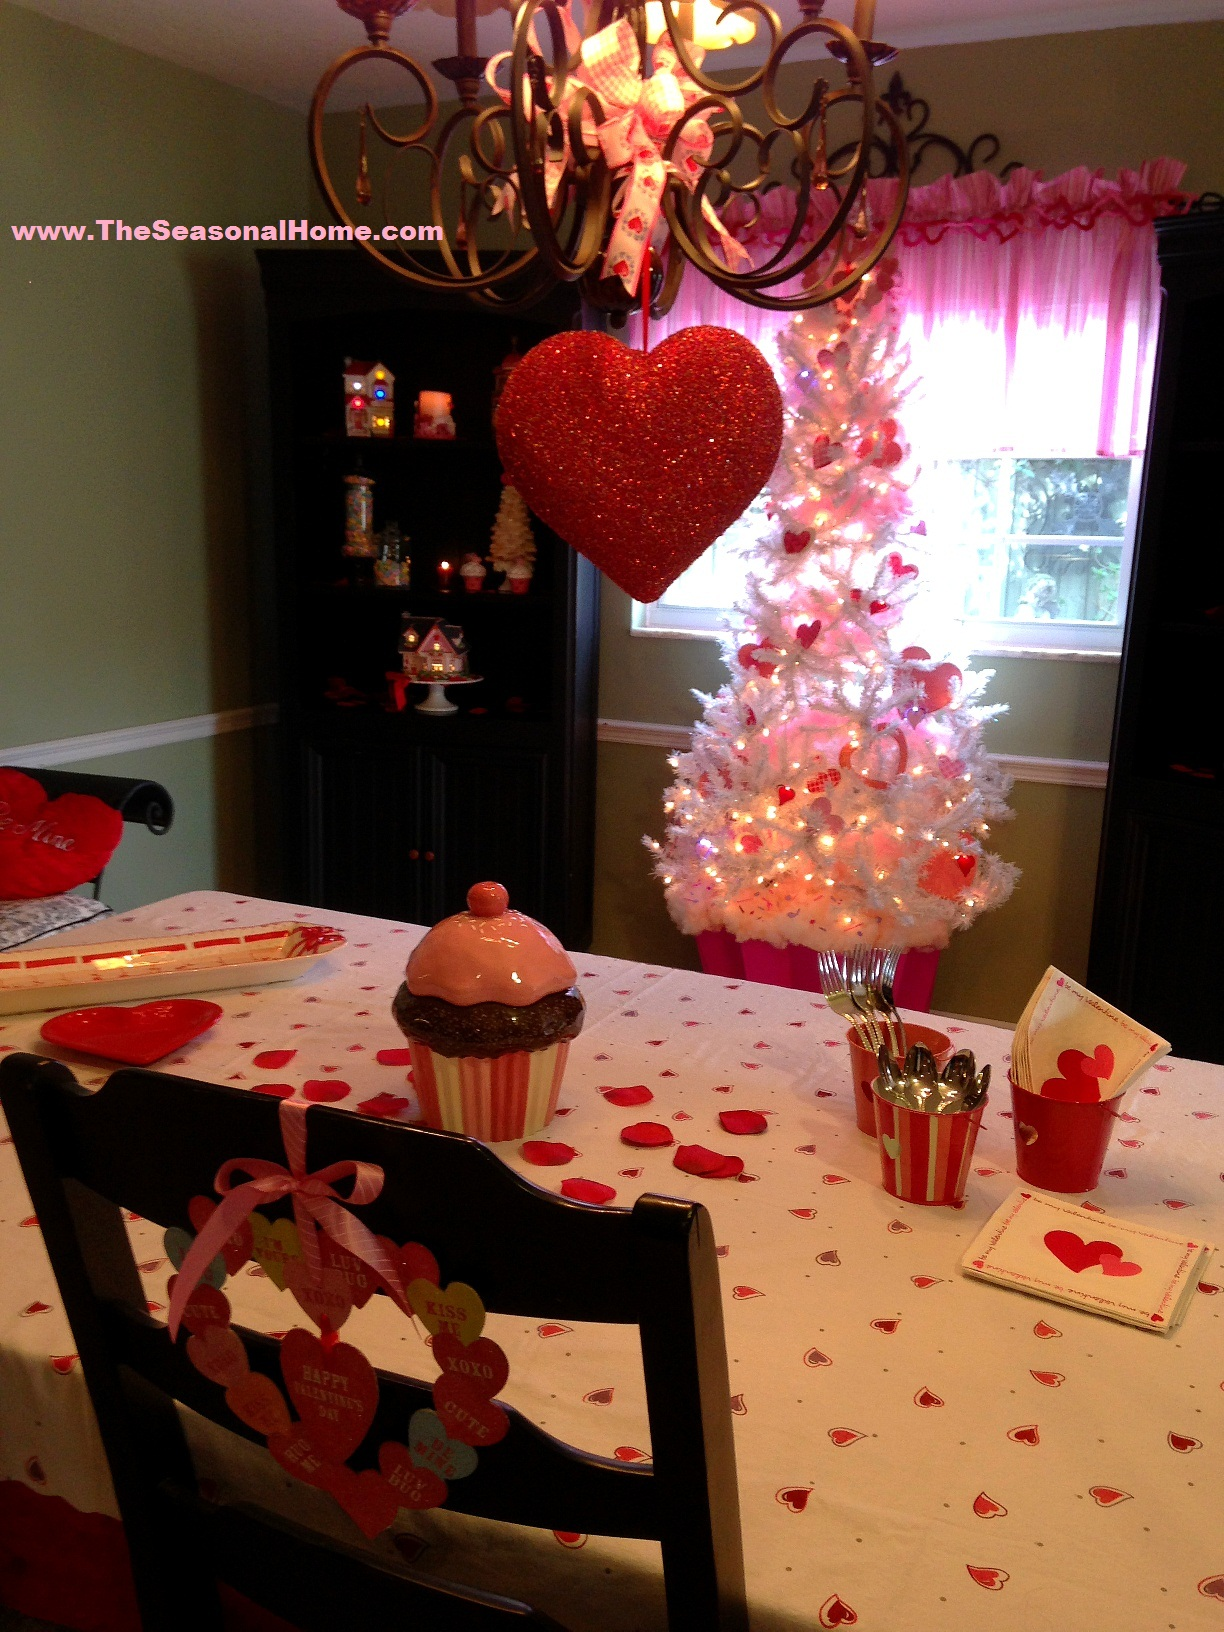 Creative, Re-purposed Decorations For Valentine's Day